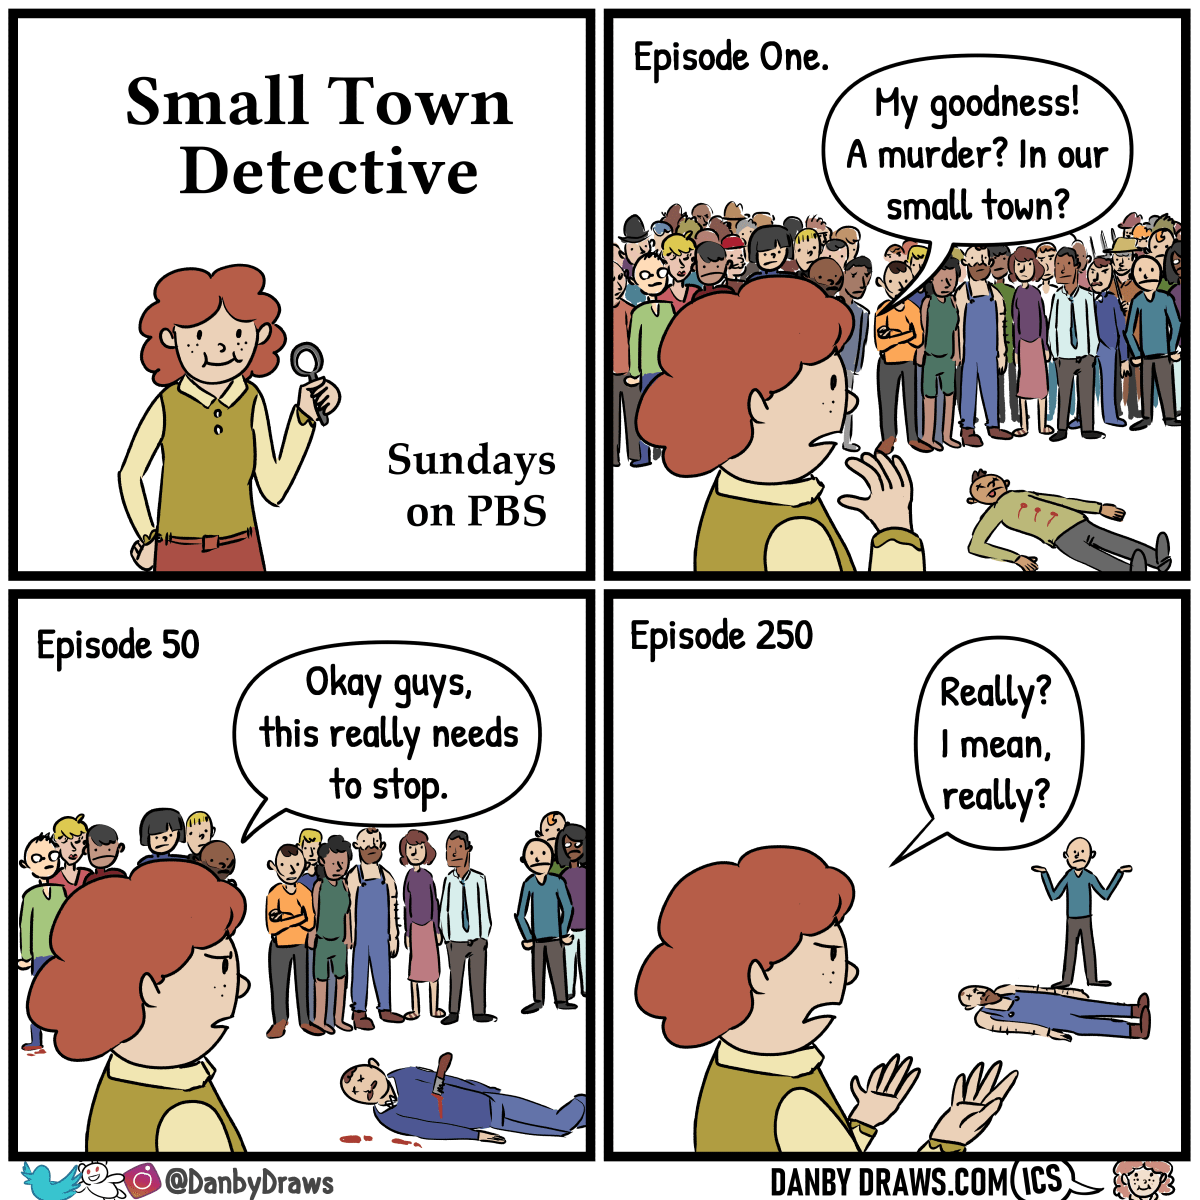 Comic by Danby Draws about smalltown detectives